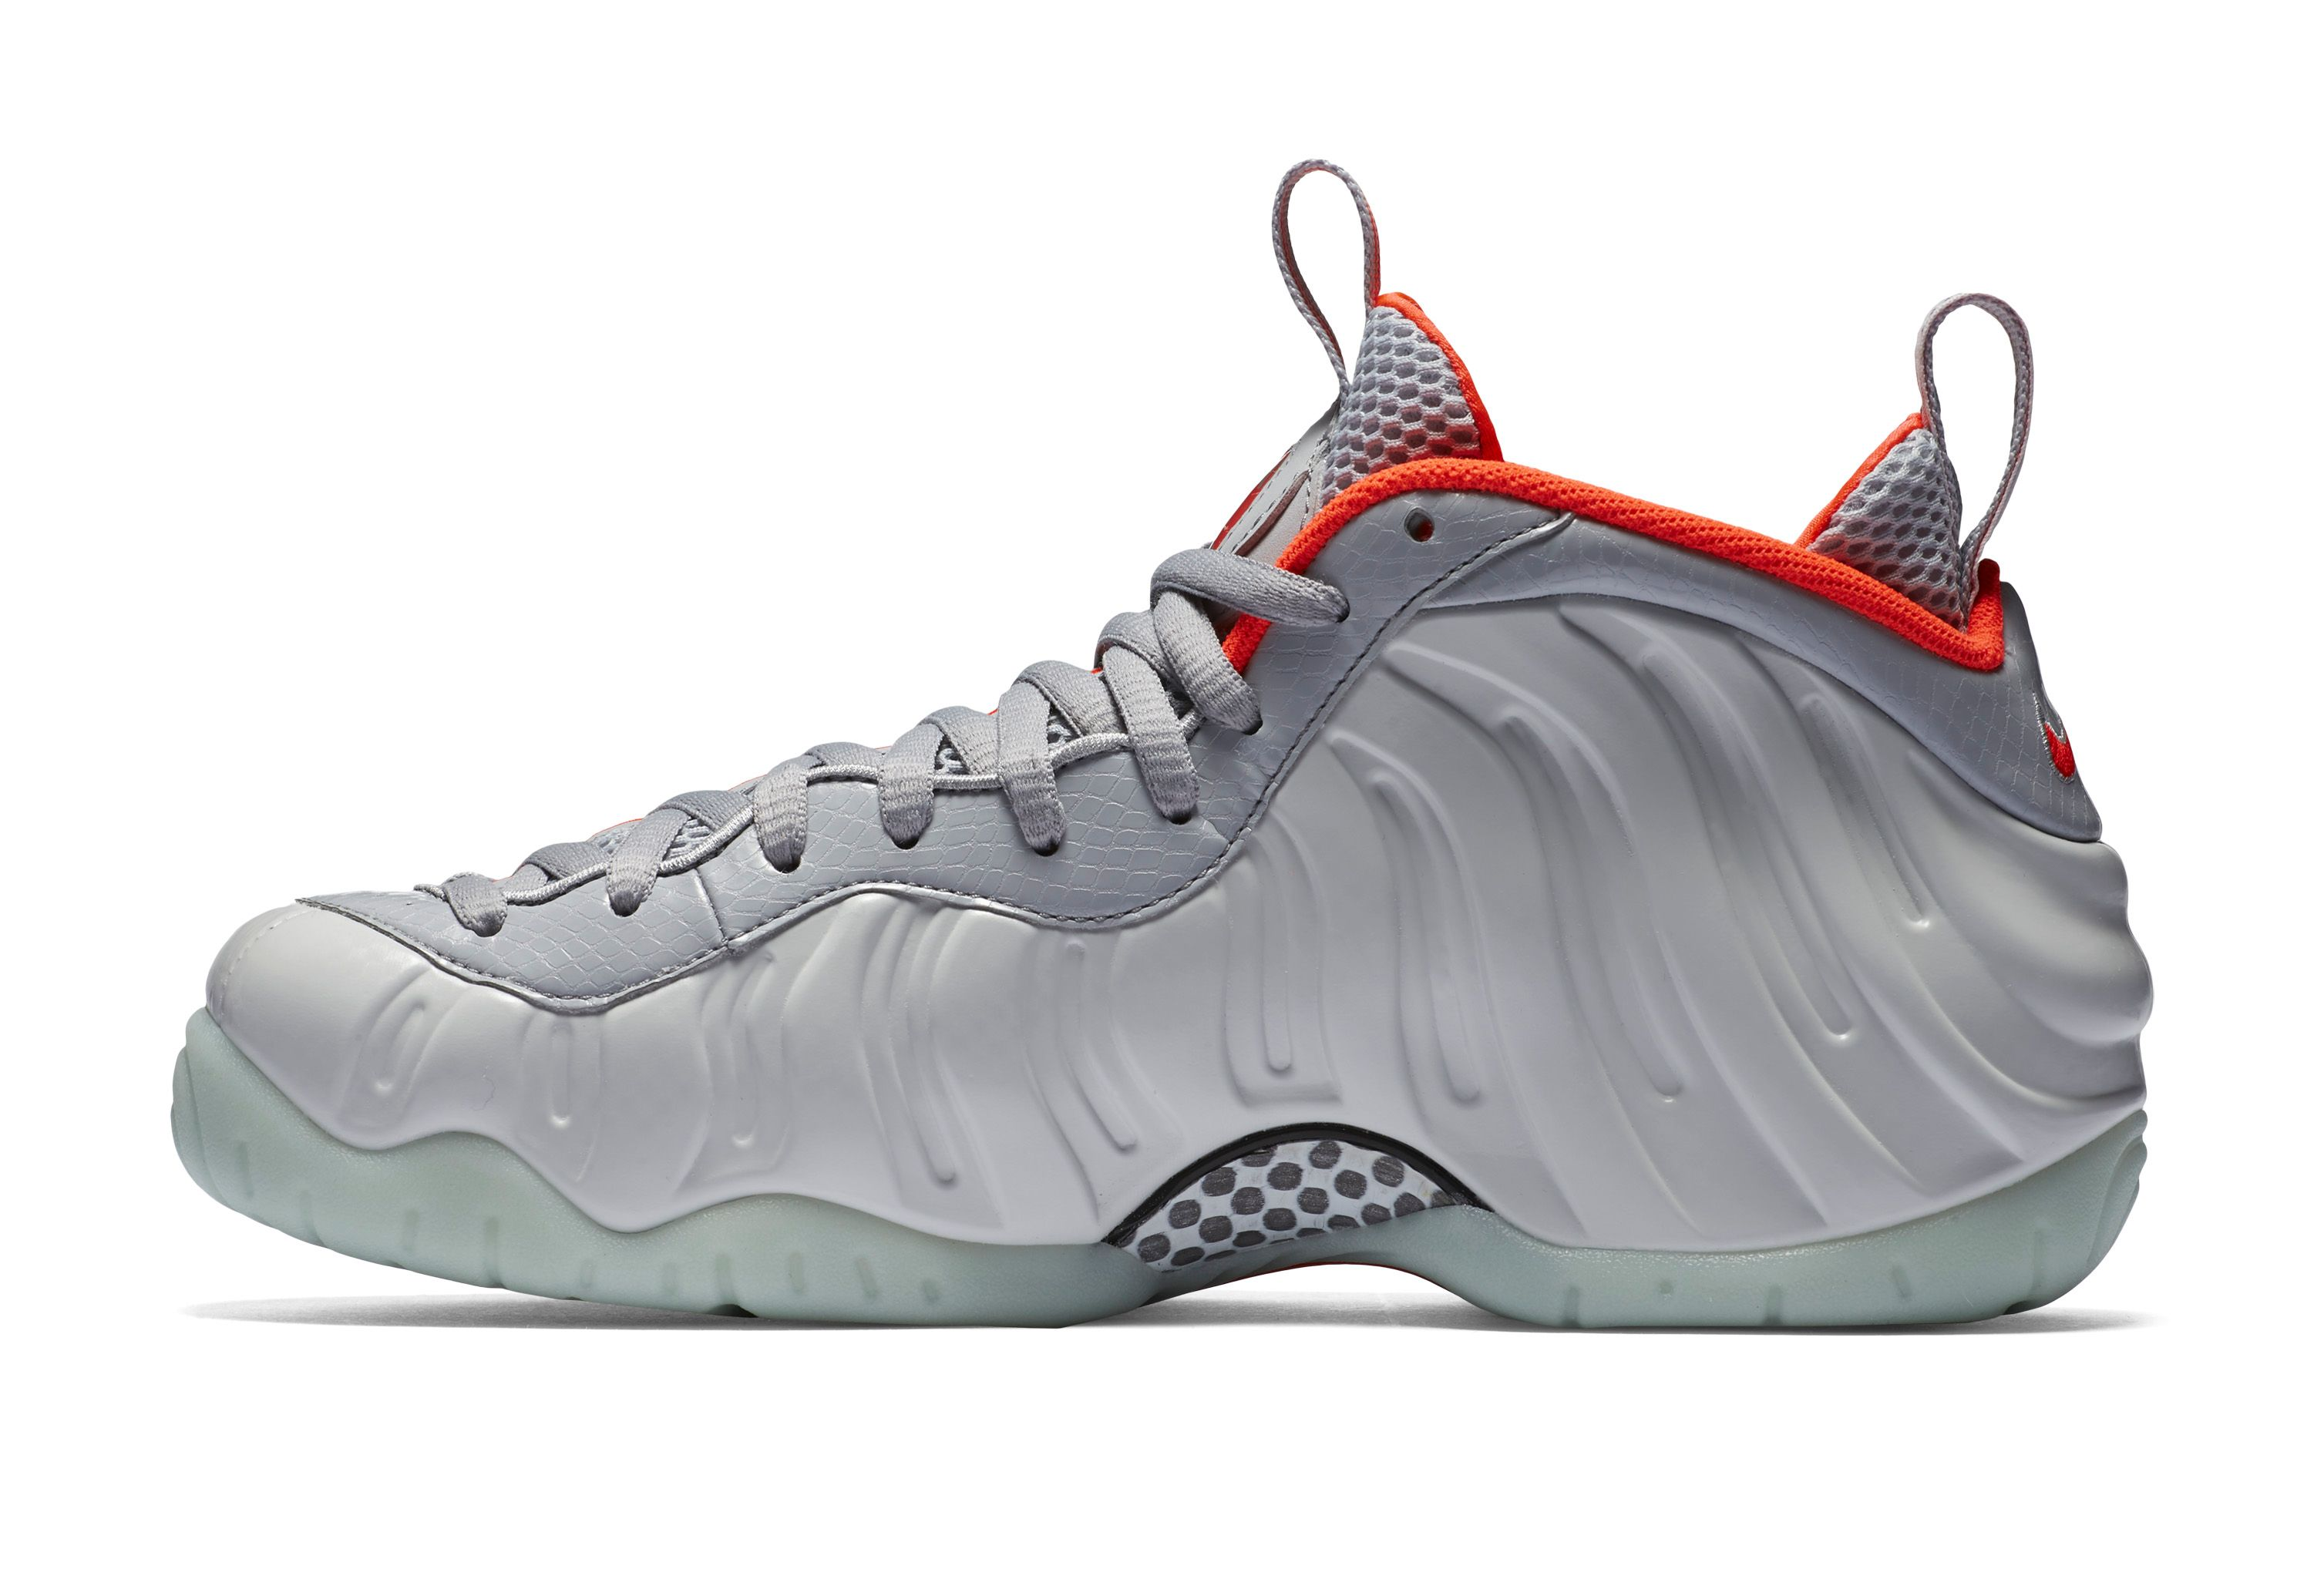 Nike Foamposite Pro Pure Platinum Yeezy medial